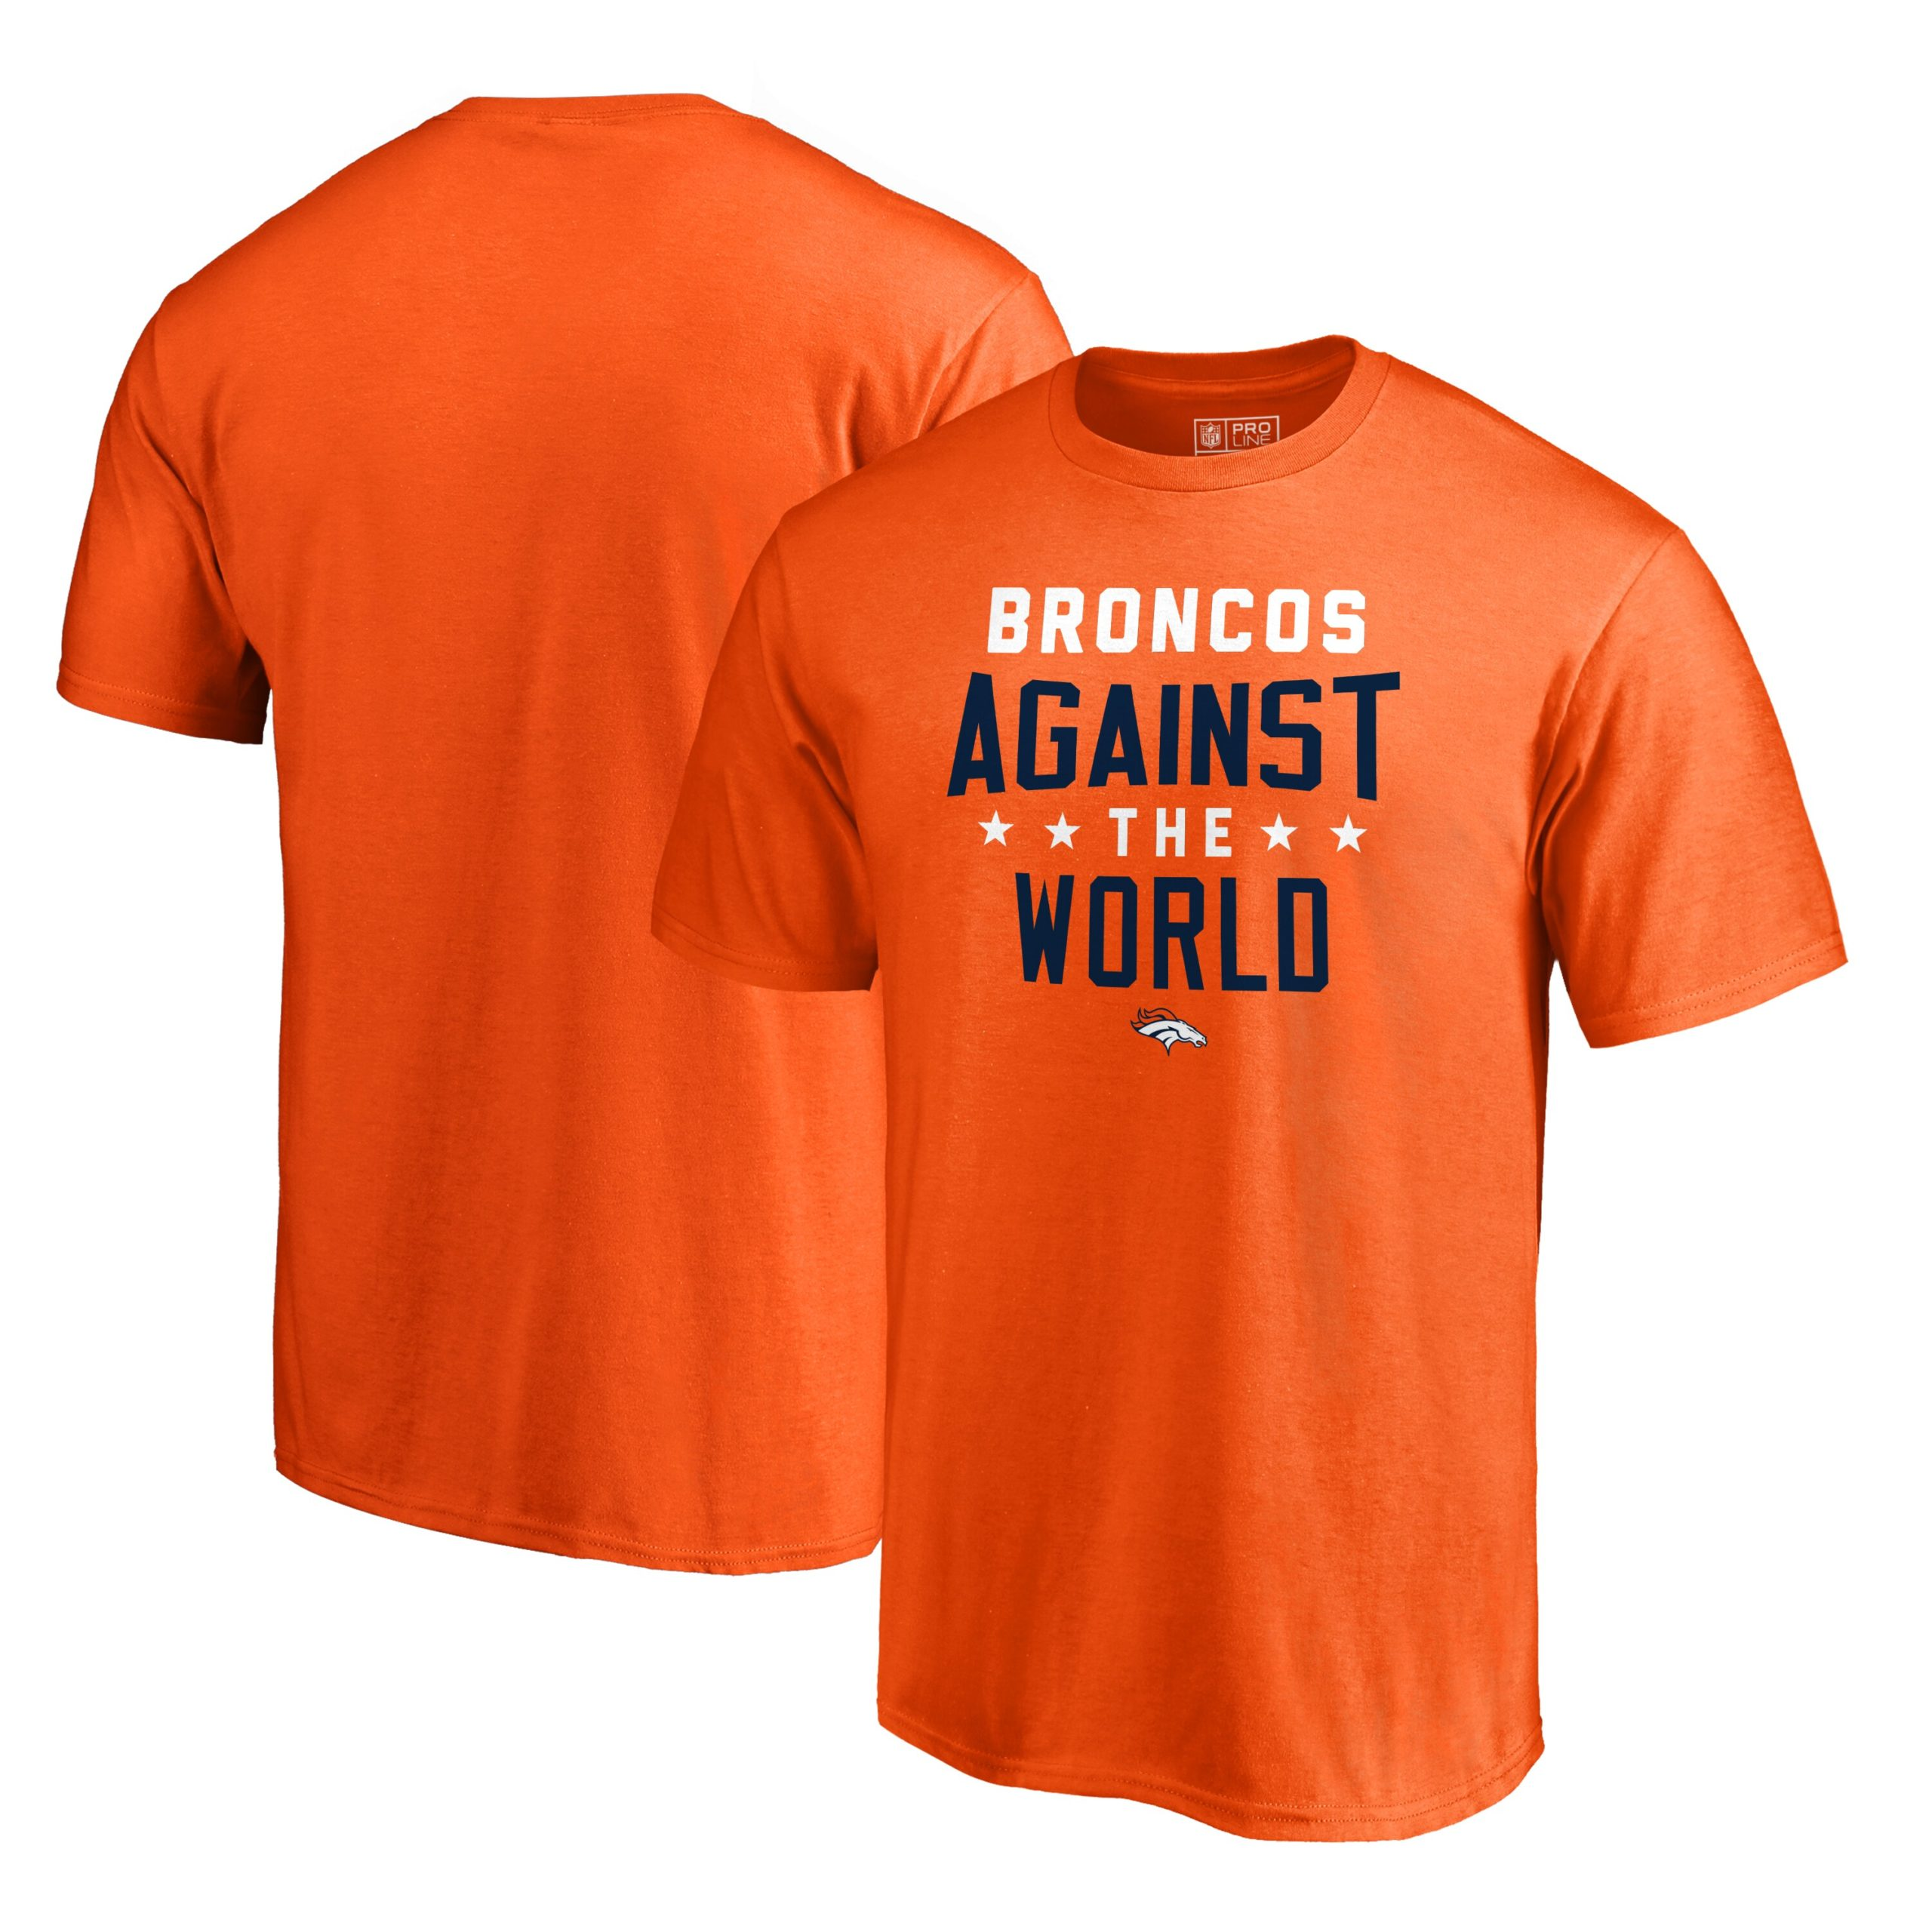 Denver Broncos NFL Pro Line by Fanatics Branded Against The World T-Shirt - Orange